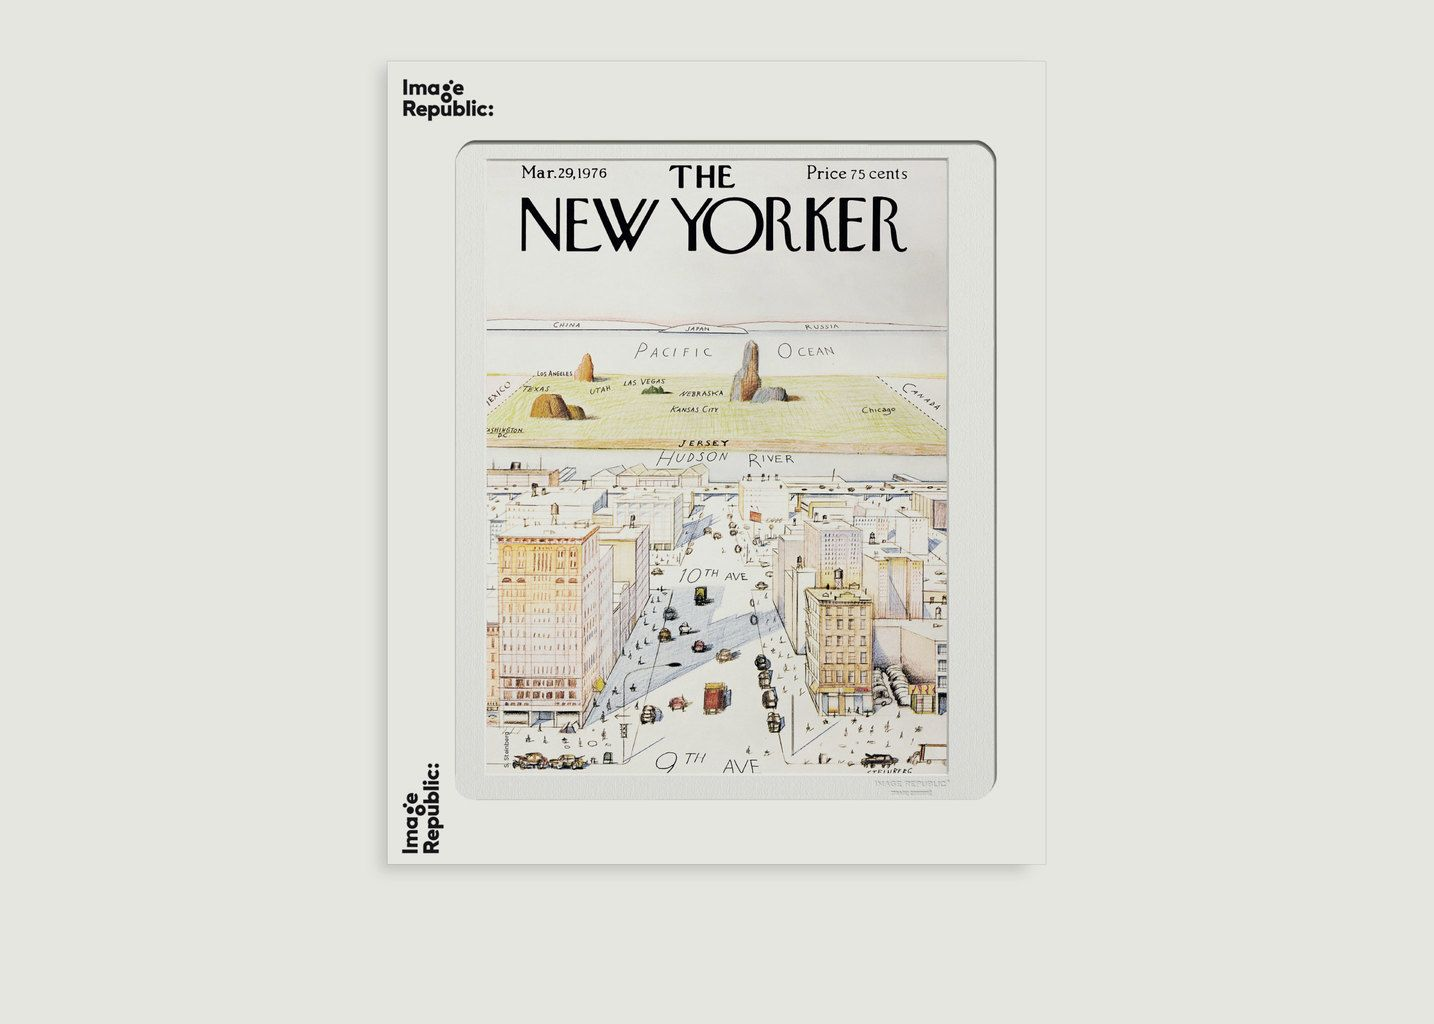 Affiche The New Yorker 07 Steinberg - Image Republic